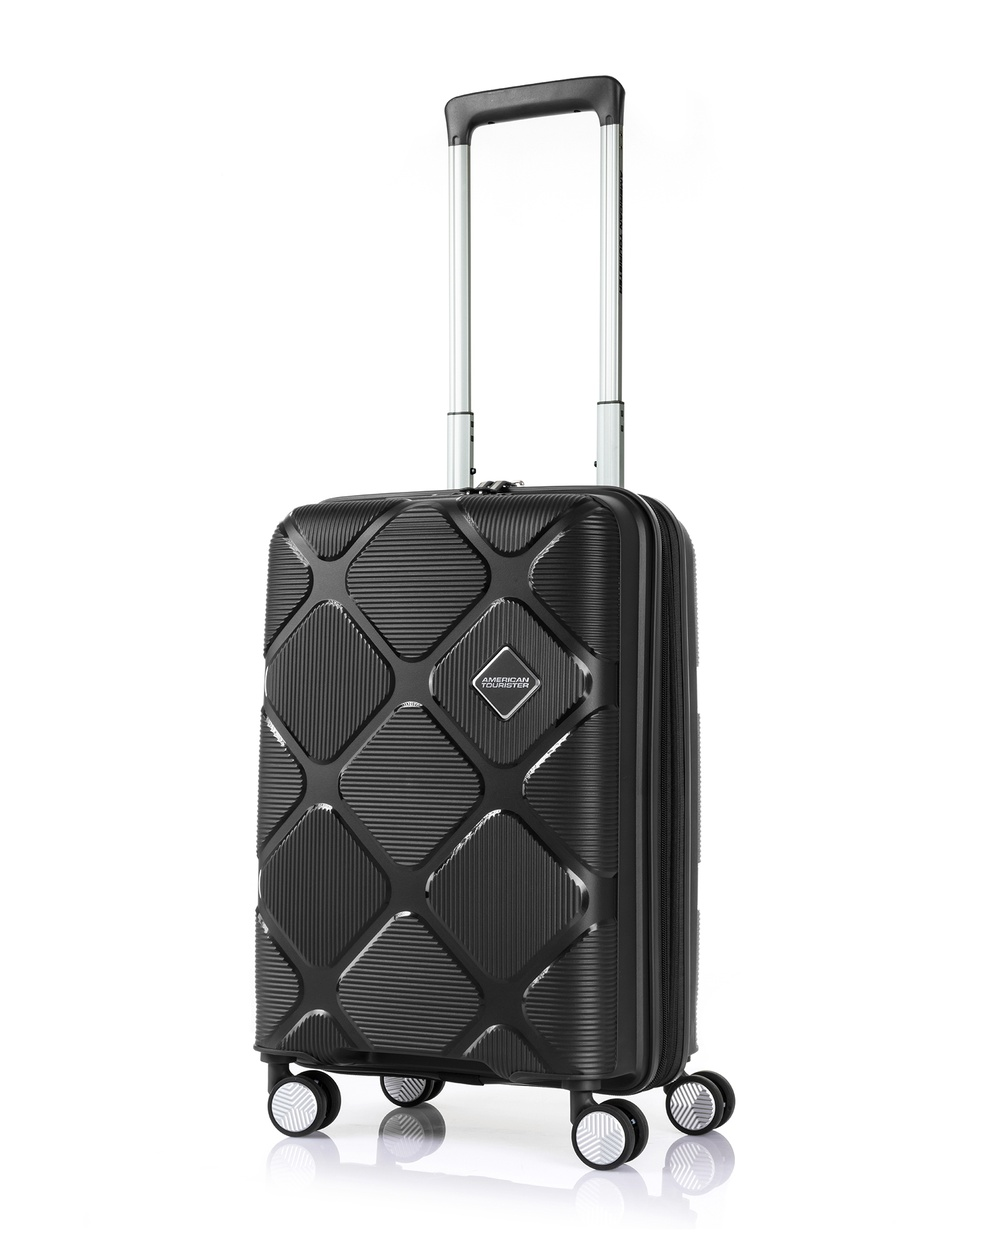 American Tourister Instagon Spinner 55 20 Travel and Luggage Jet Black 55-20